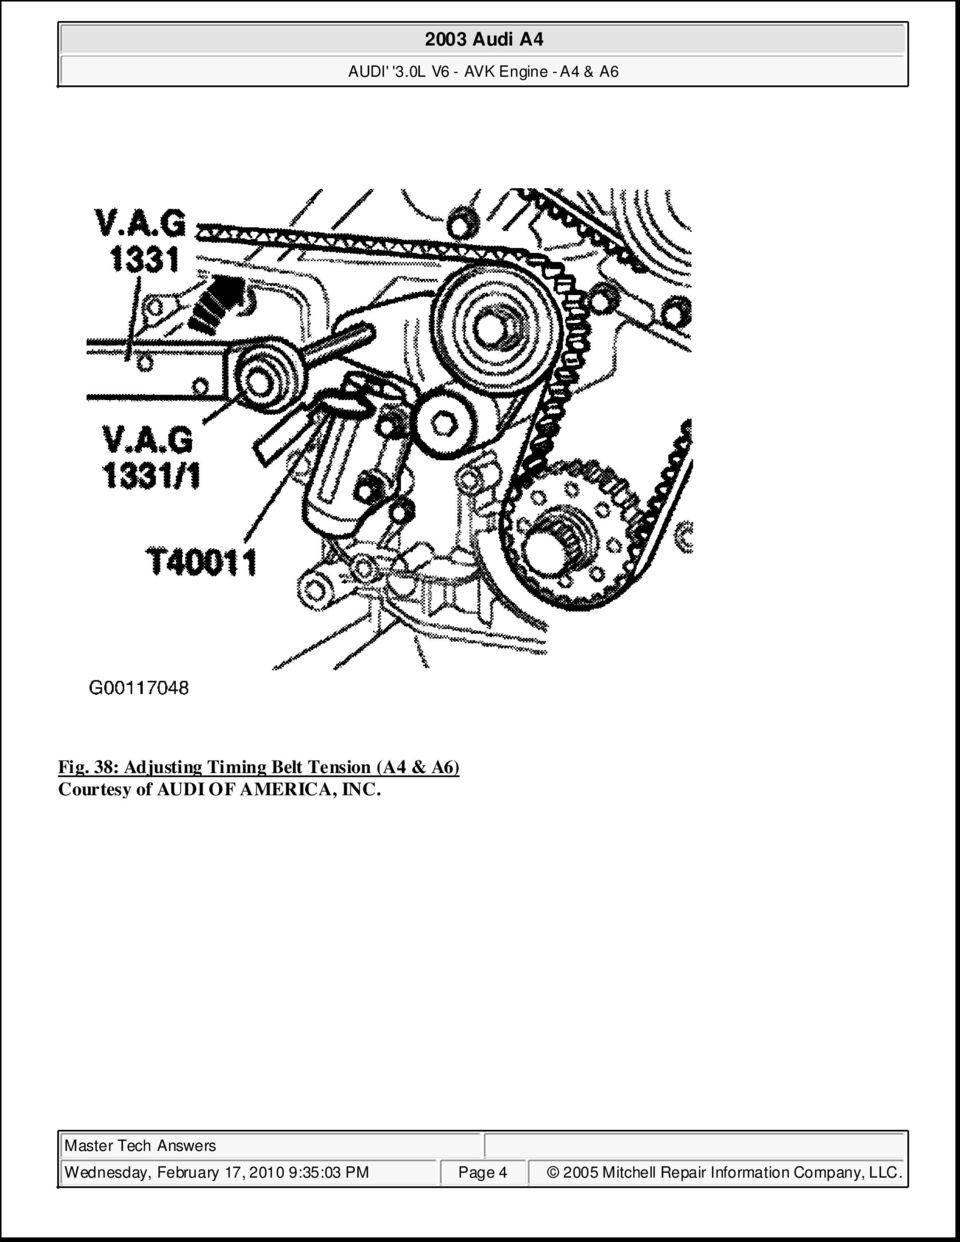 2003 Audi A4 30l V6 Avk Engine A6 Pdf 2005 3 2 Timing February 17 2010 93503 Pm Page 4